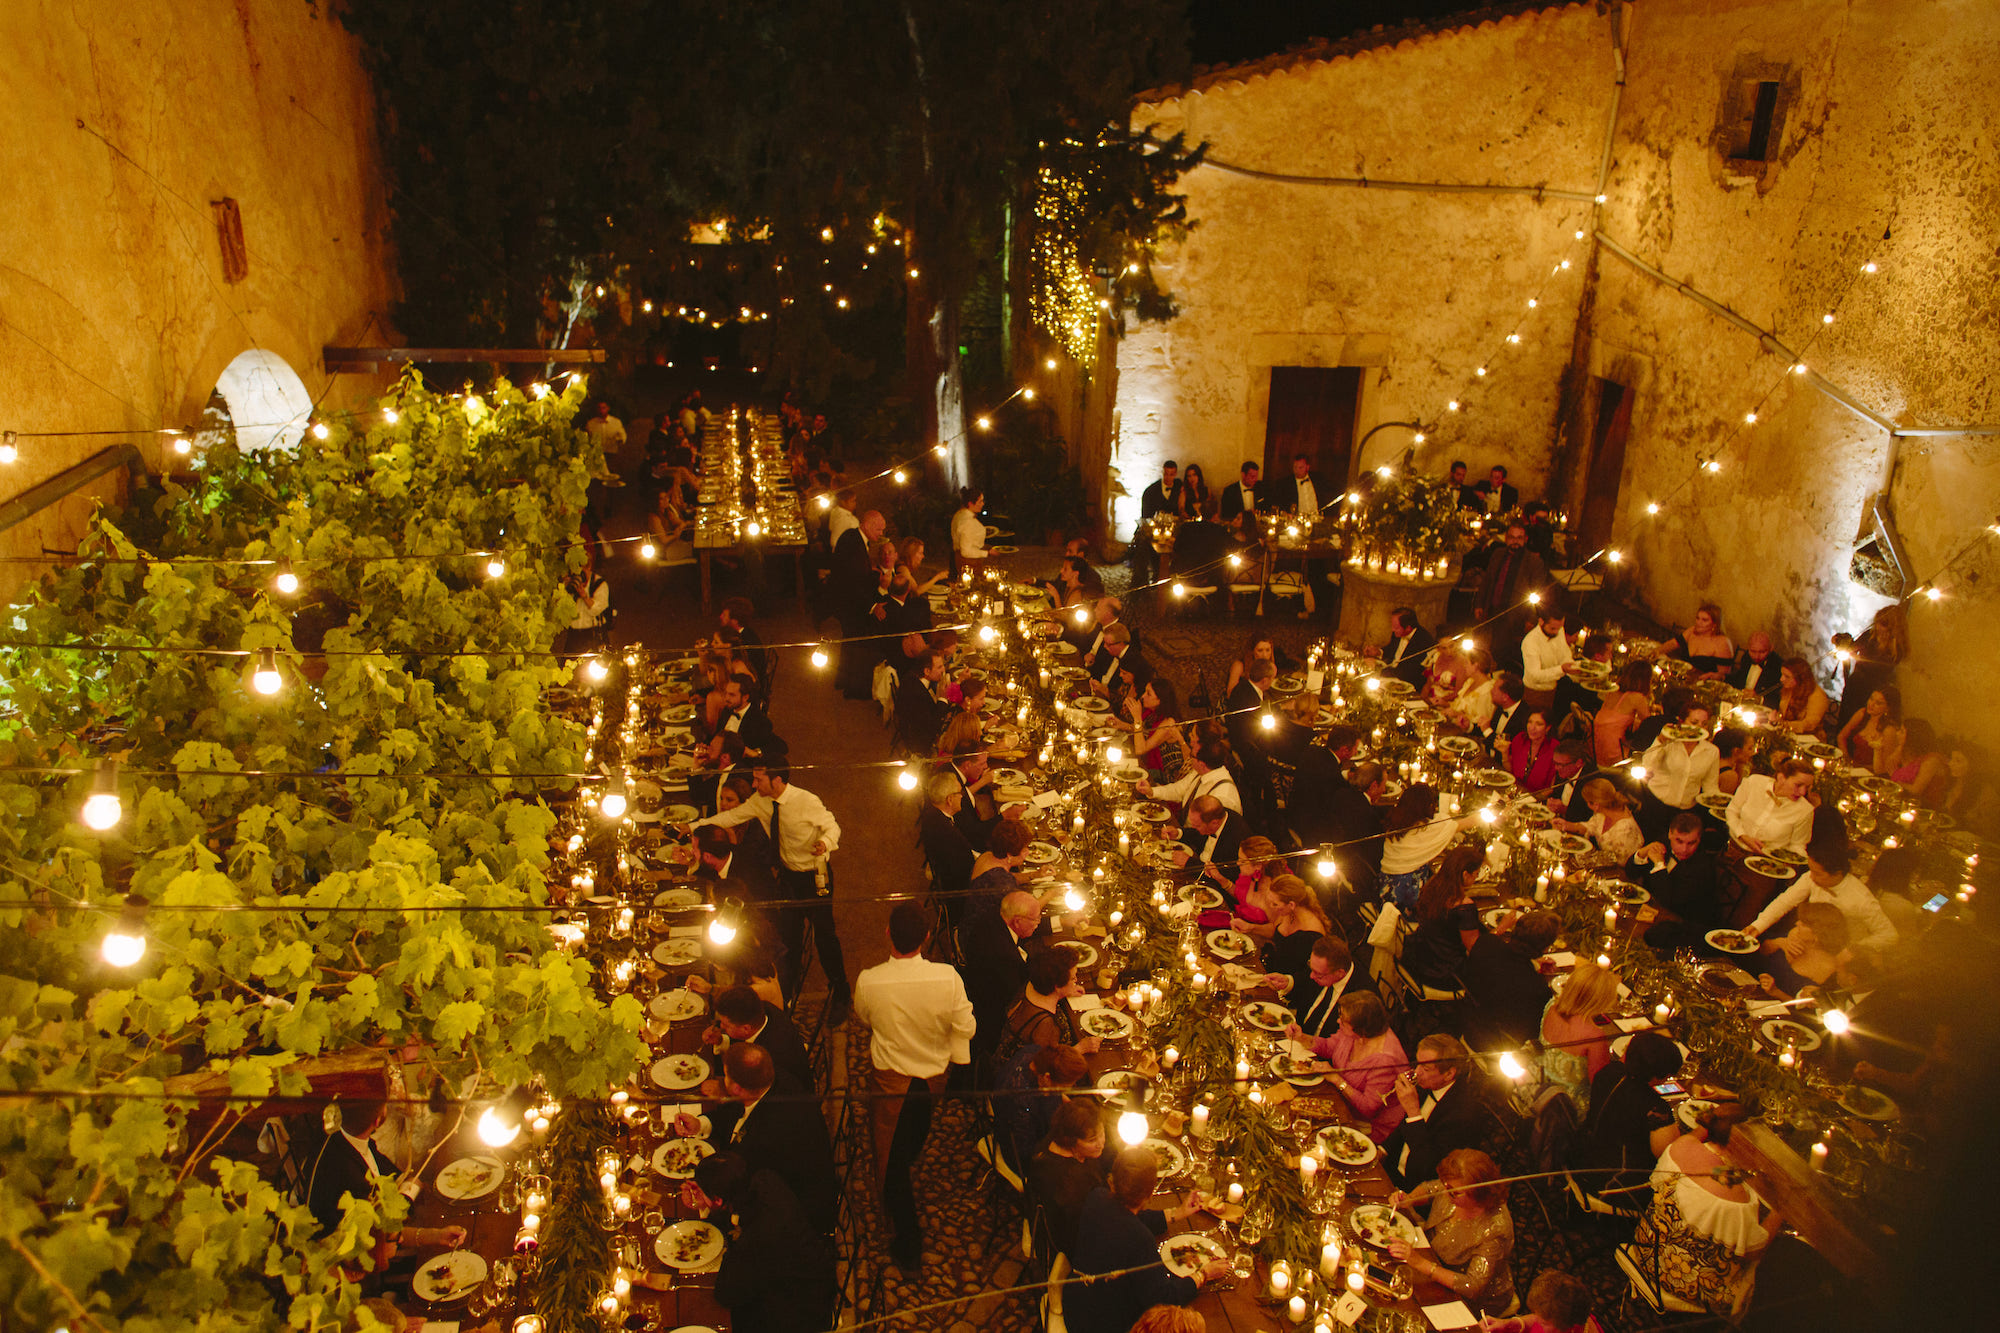 Exclusive wedding venue in a typical Majorcan courtyard.